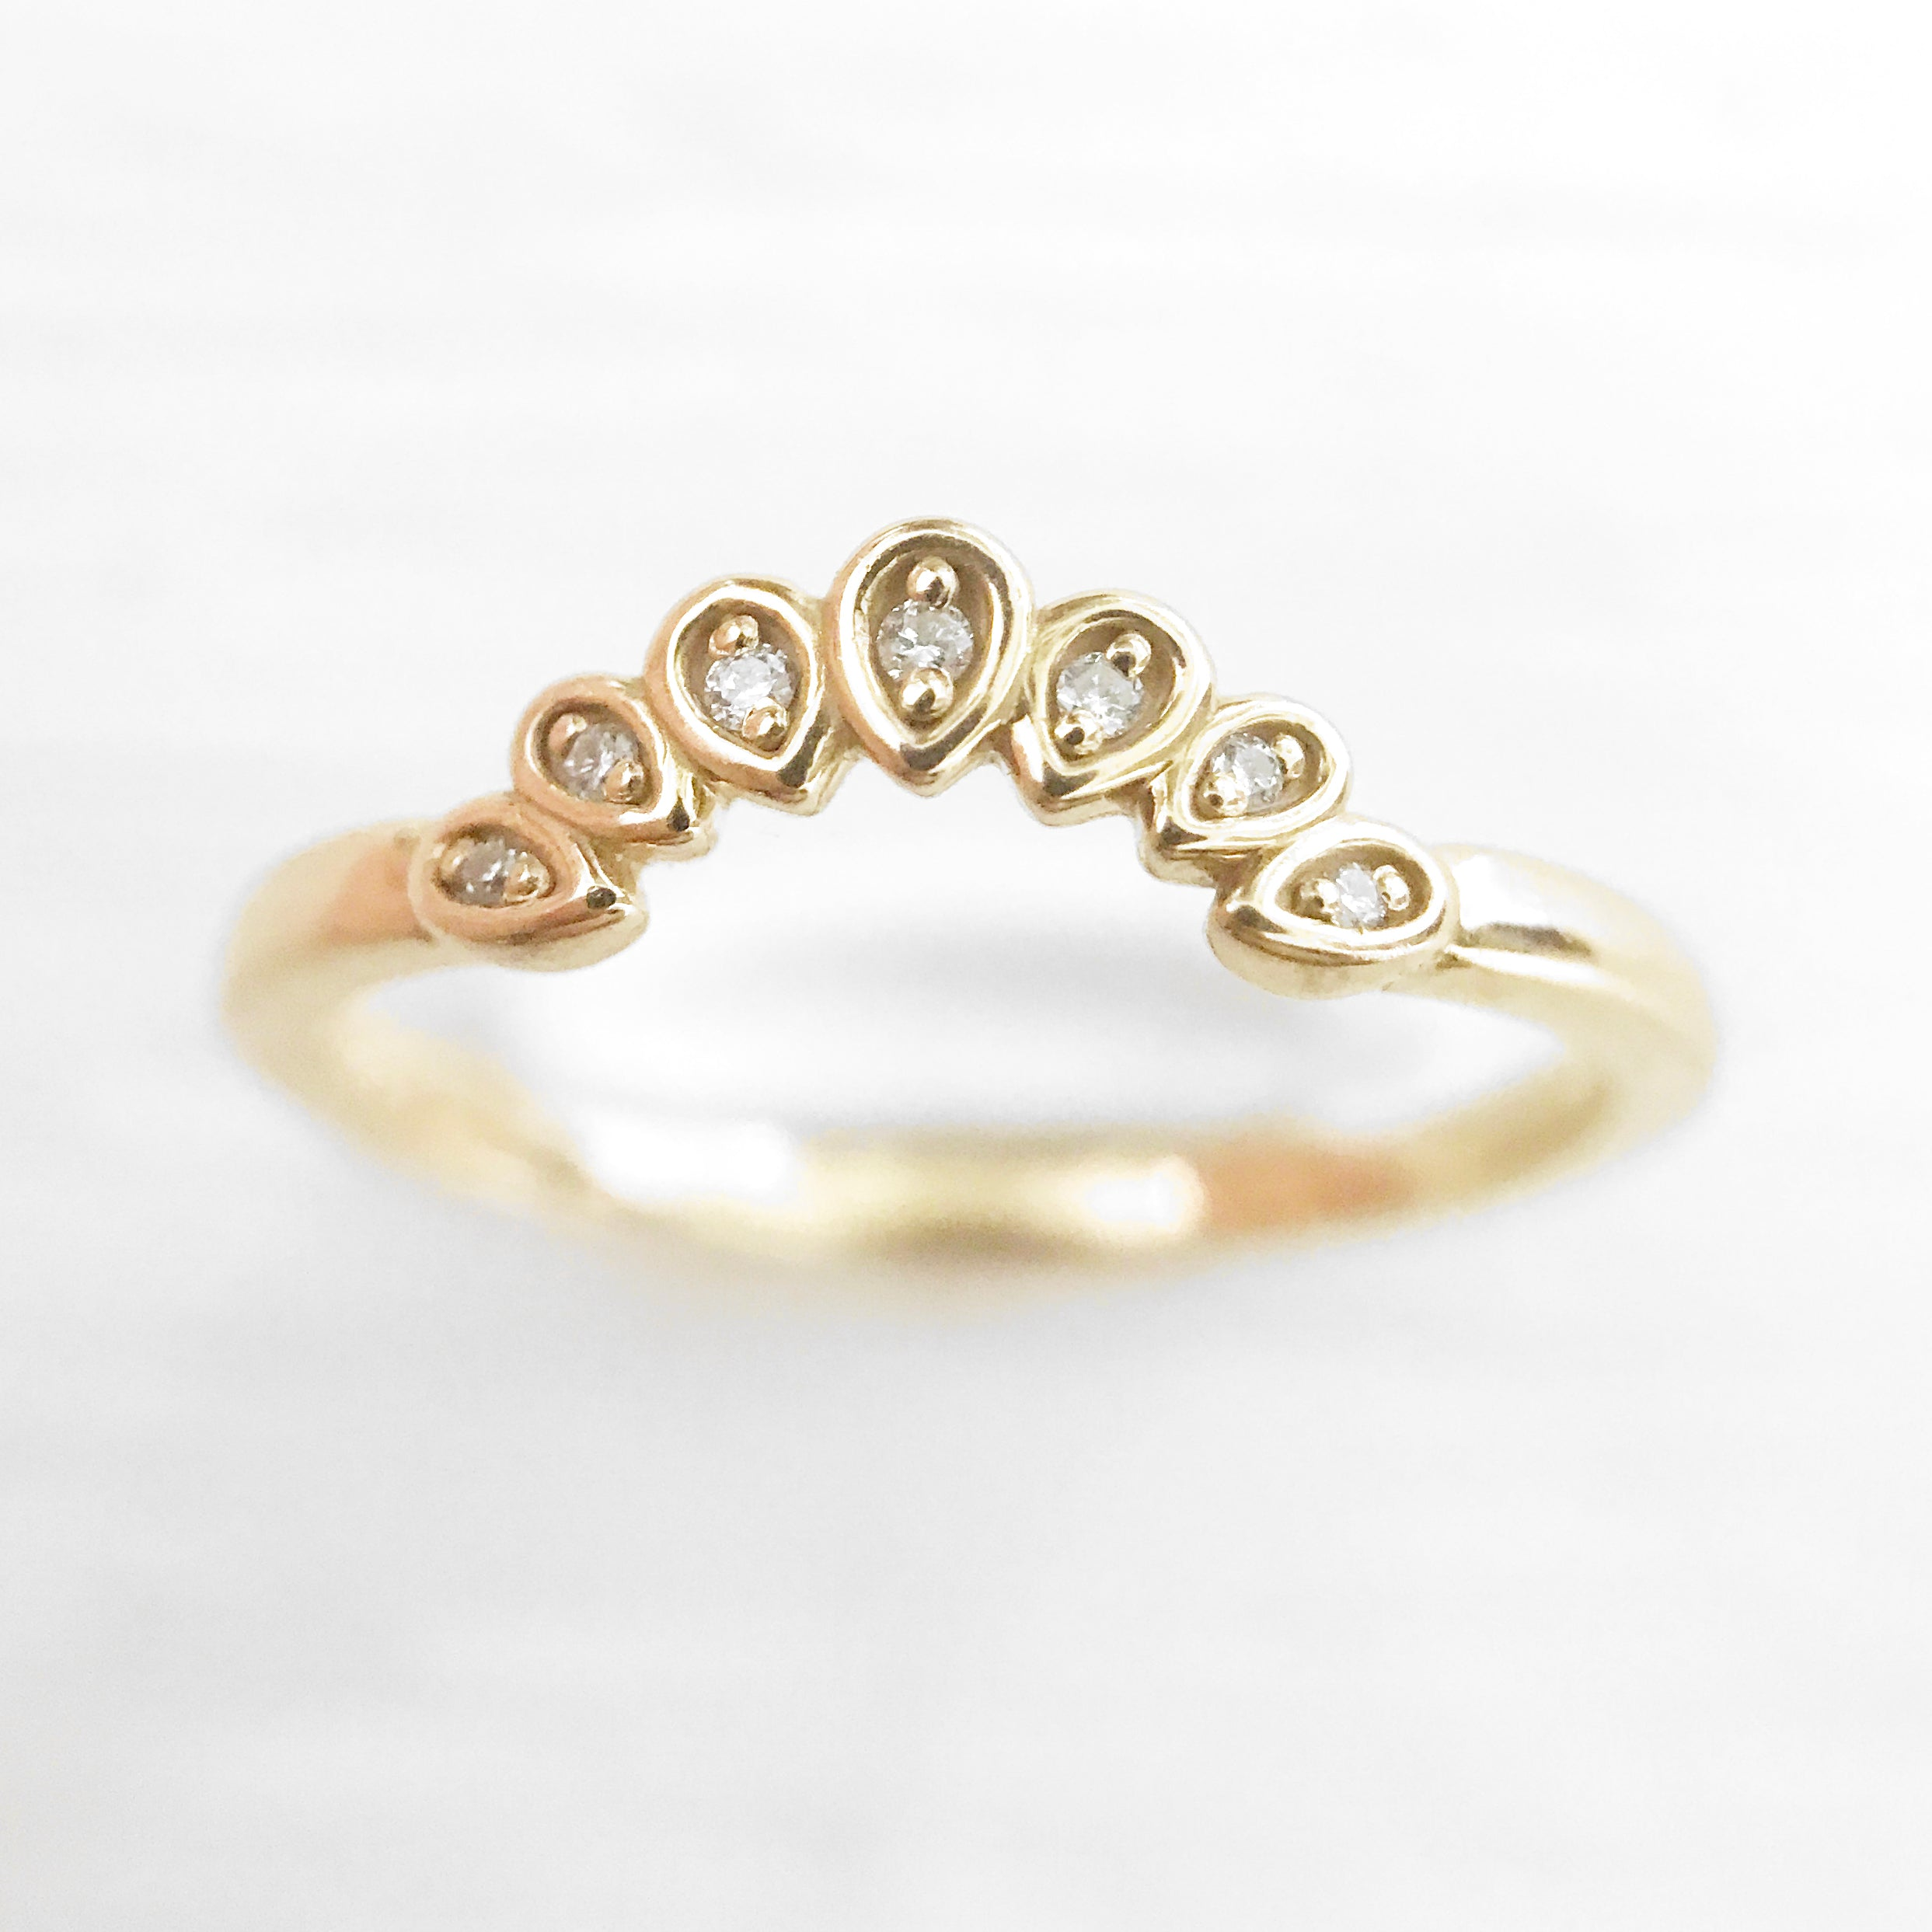 Flora - Curved antique style diamond band - Celestial Diamonds ® by Midwinter Co.